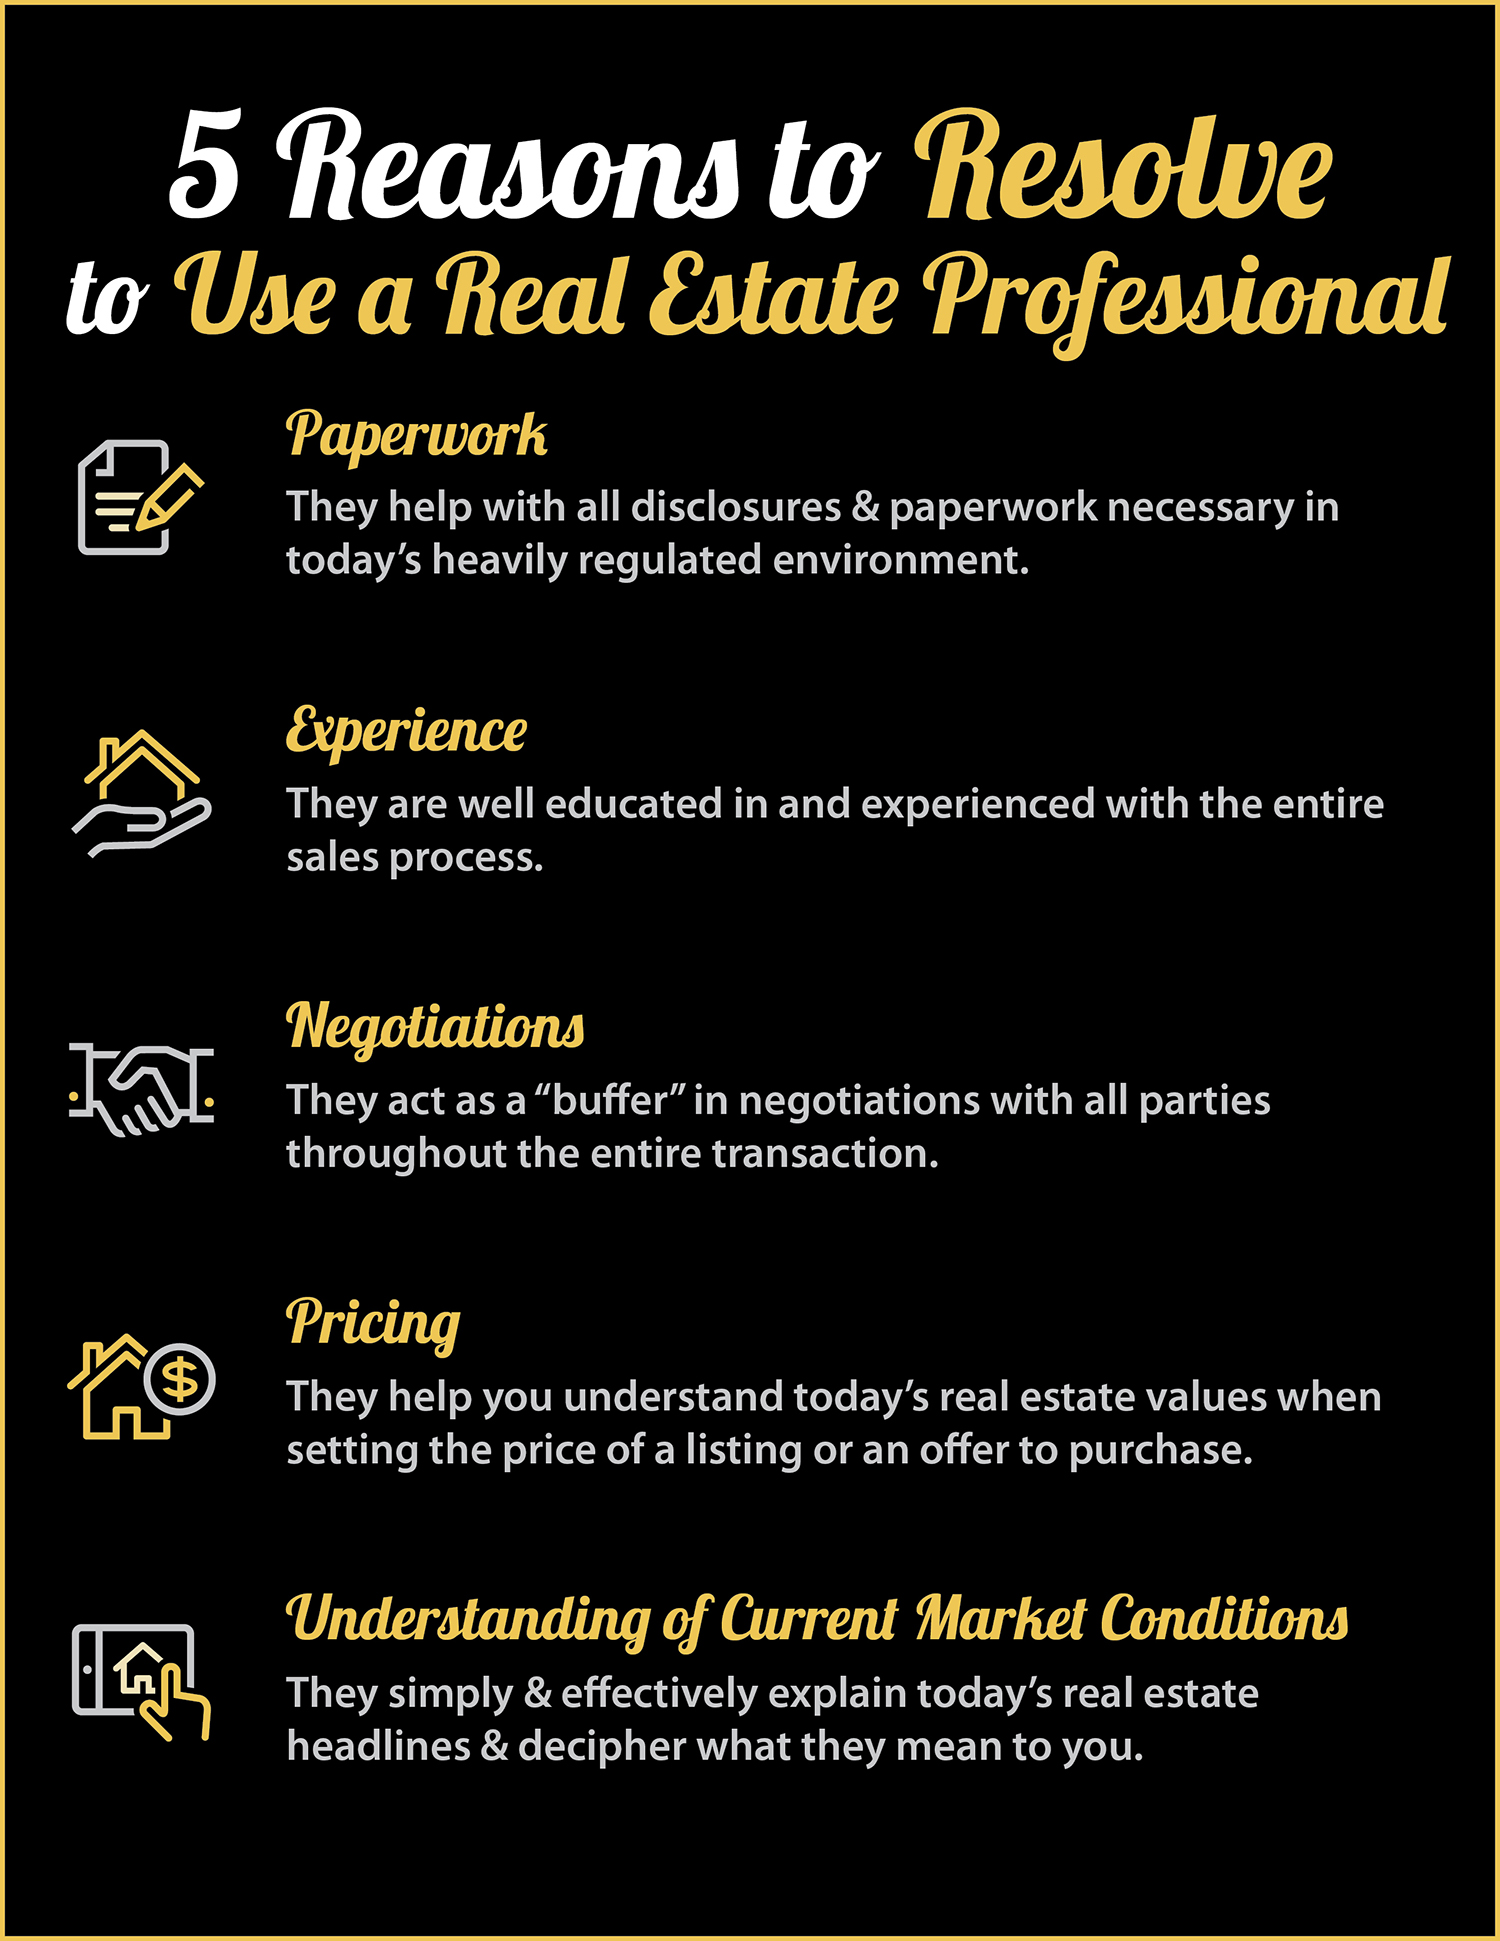 hire a real estate professional infographic